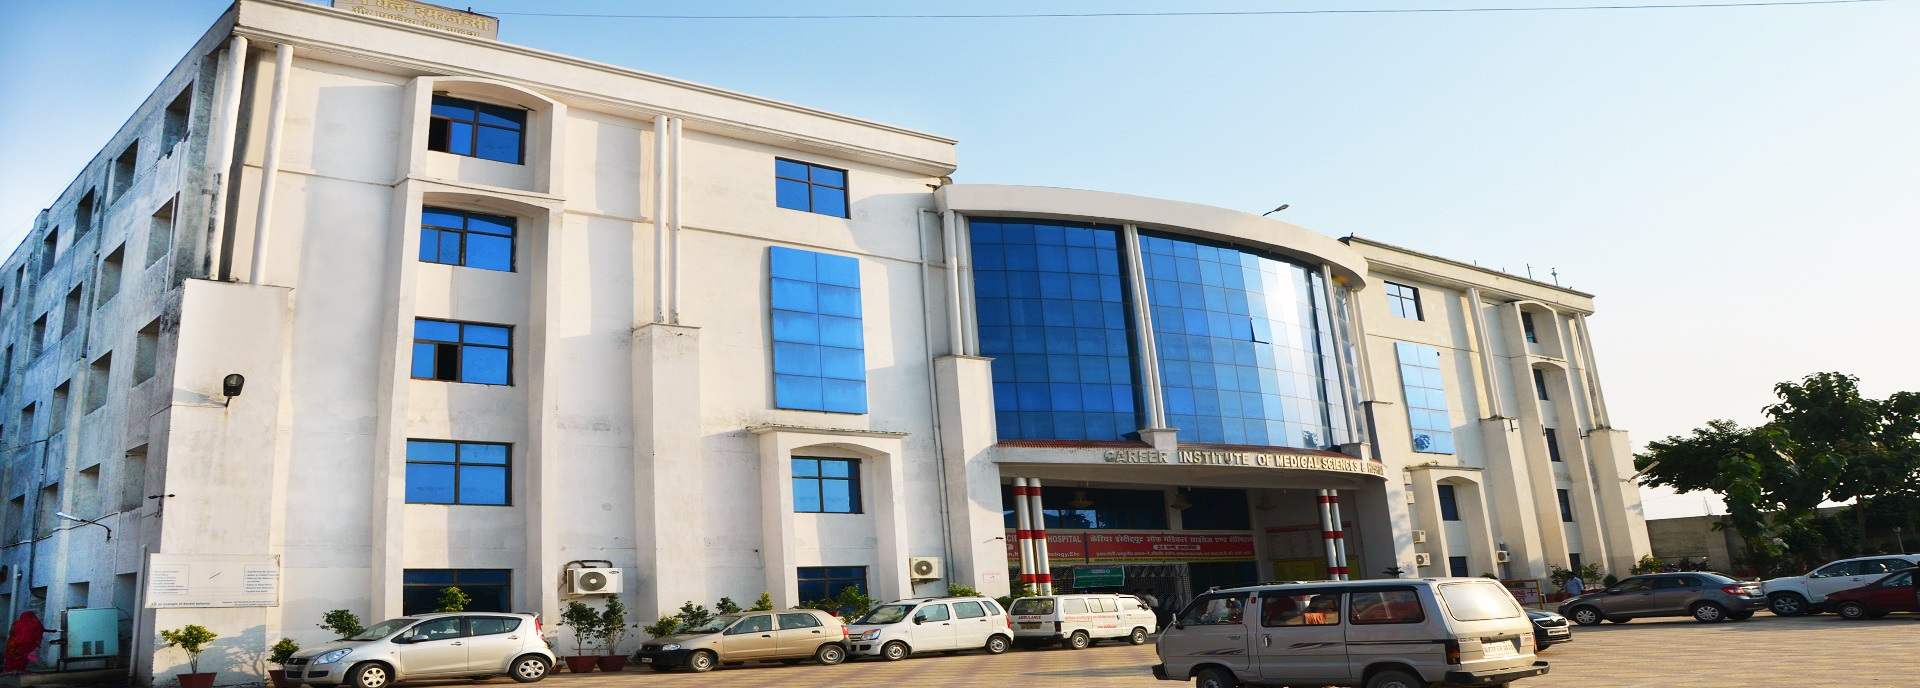 Career Institute of Medical Sciences and Hospital, Lucknow Image